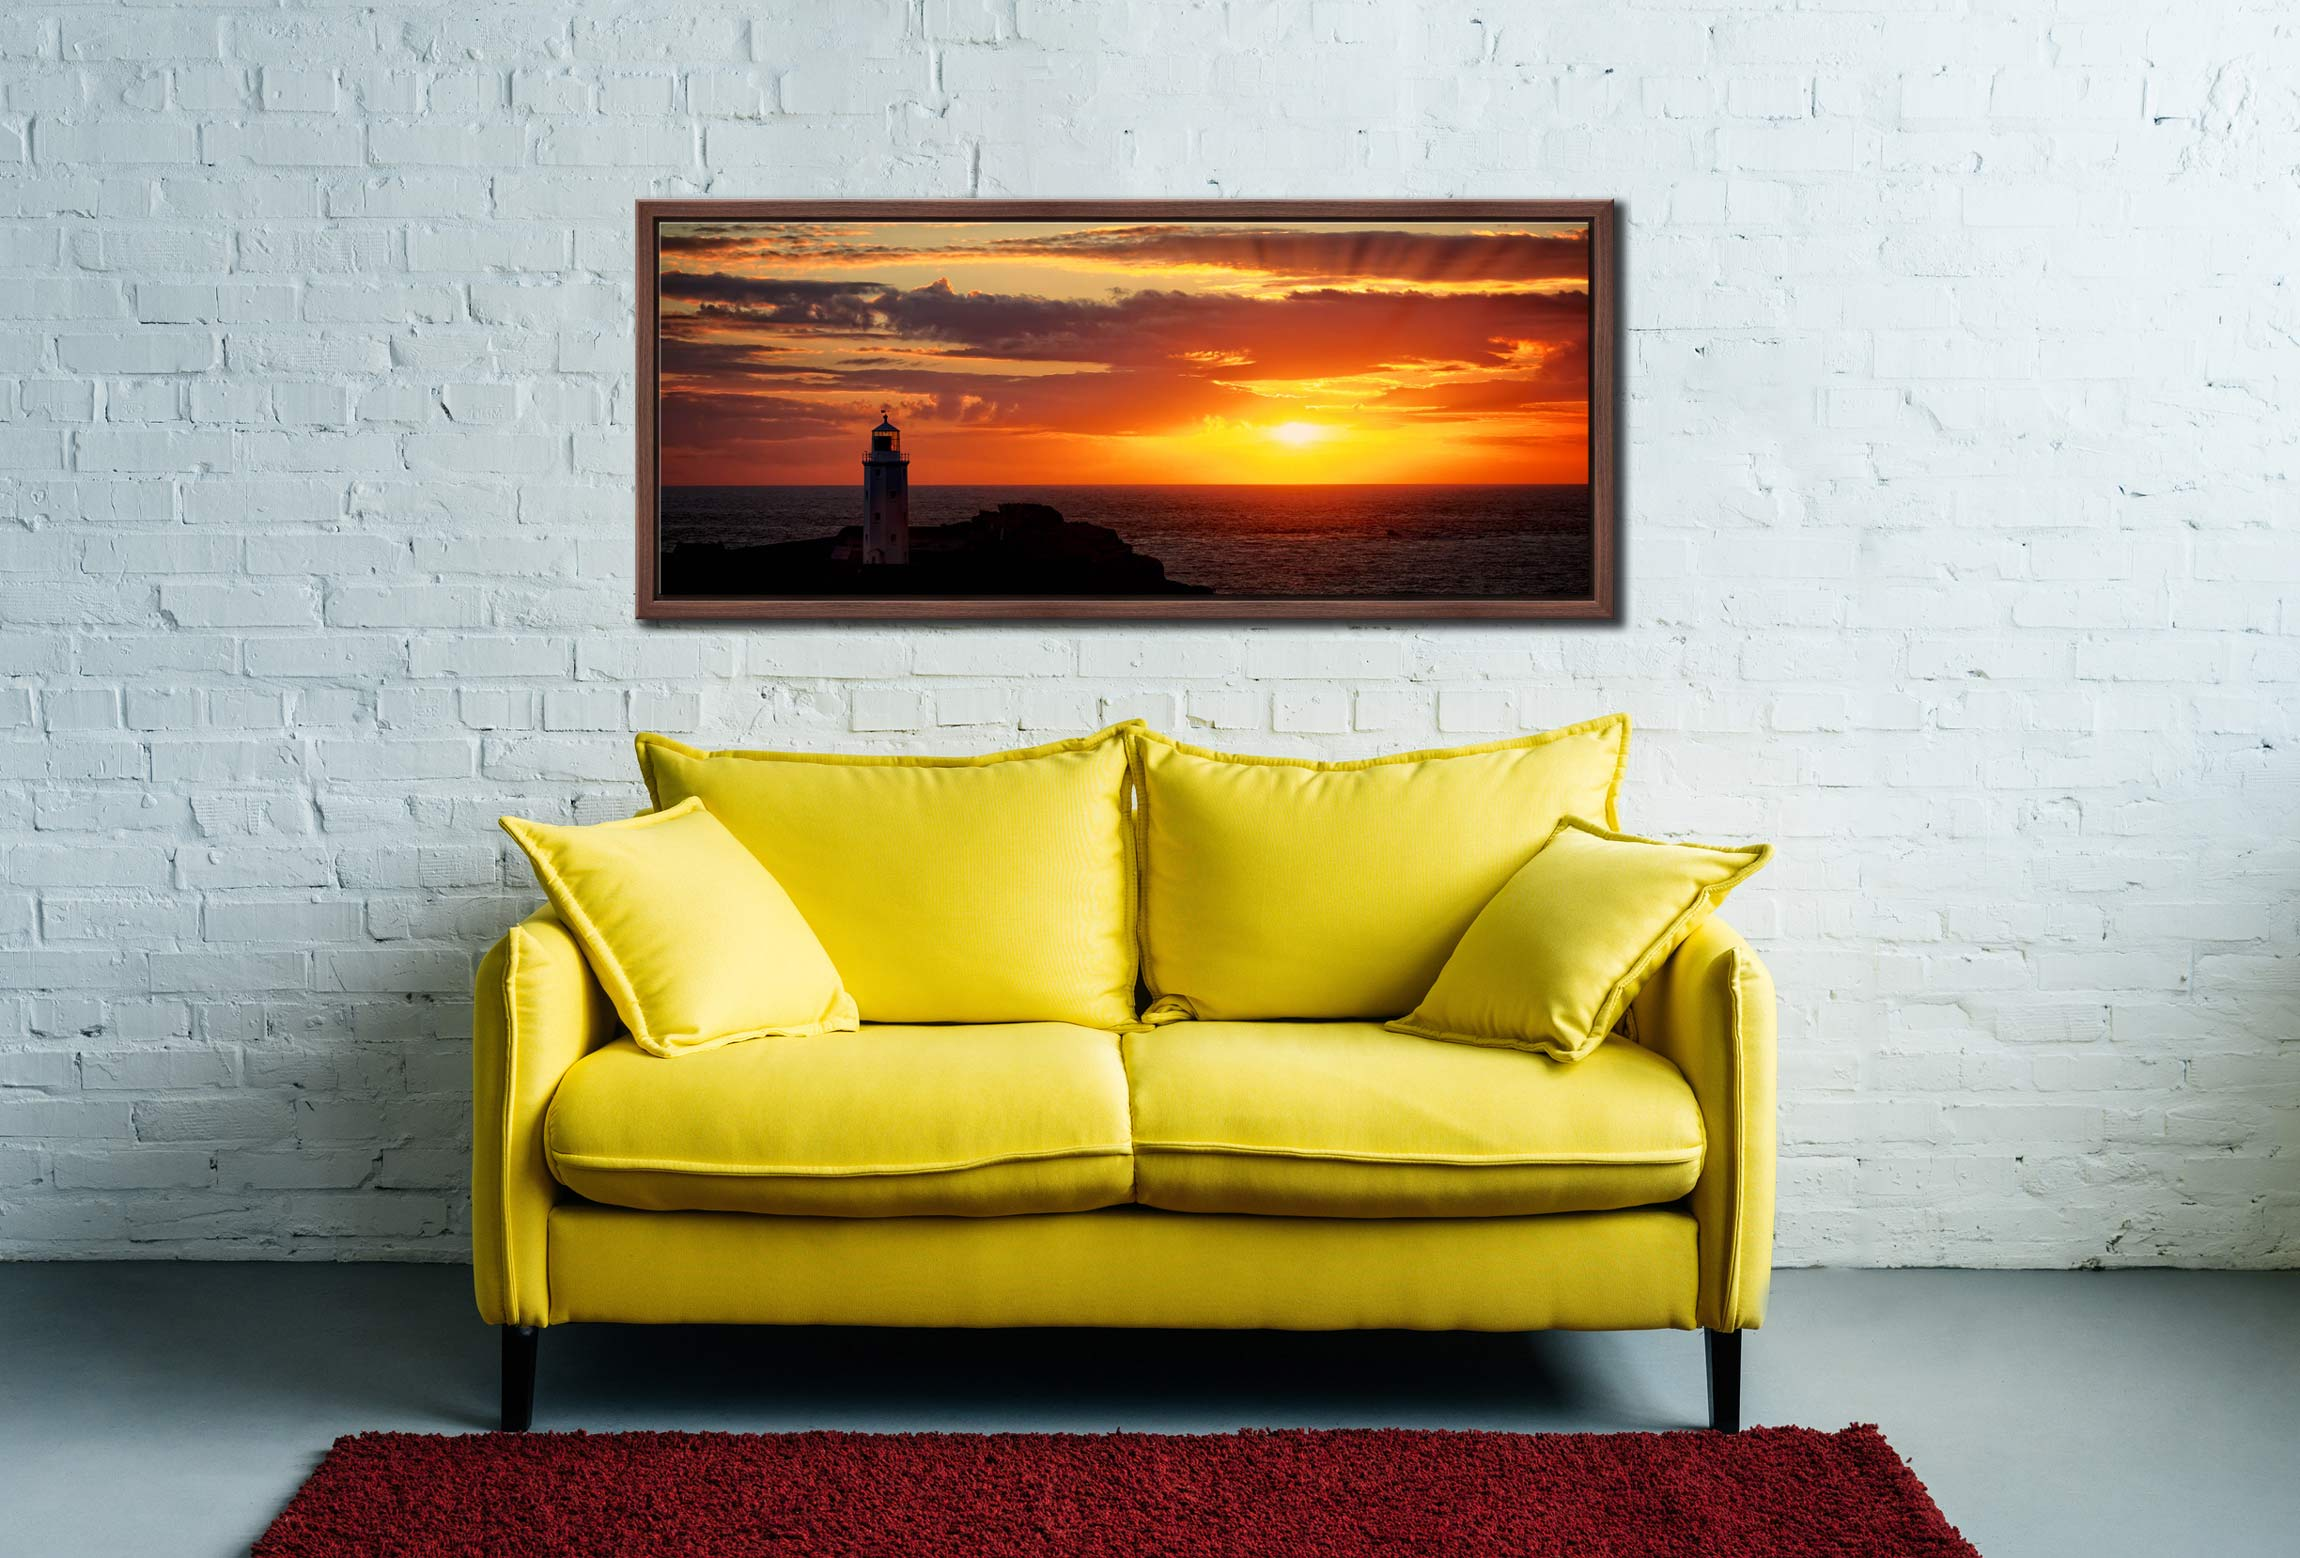 The golden sun beaming across the skies over Godrevy Lighthouse in Cornwall - Walnut floater frame with acrylic glazing on Wall